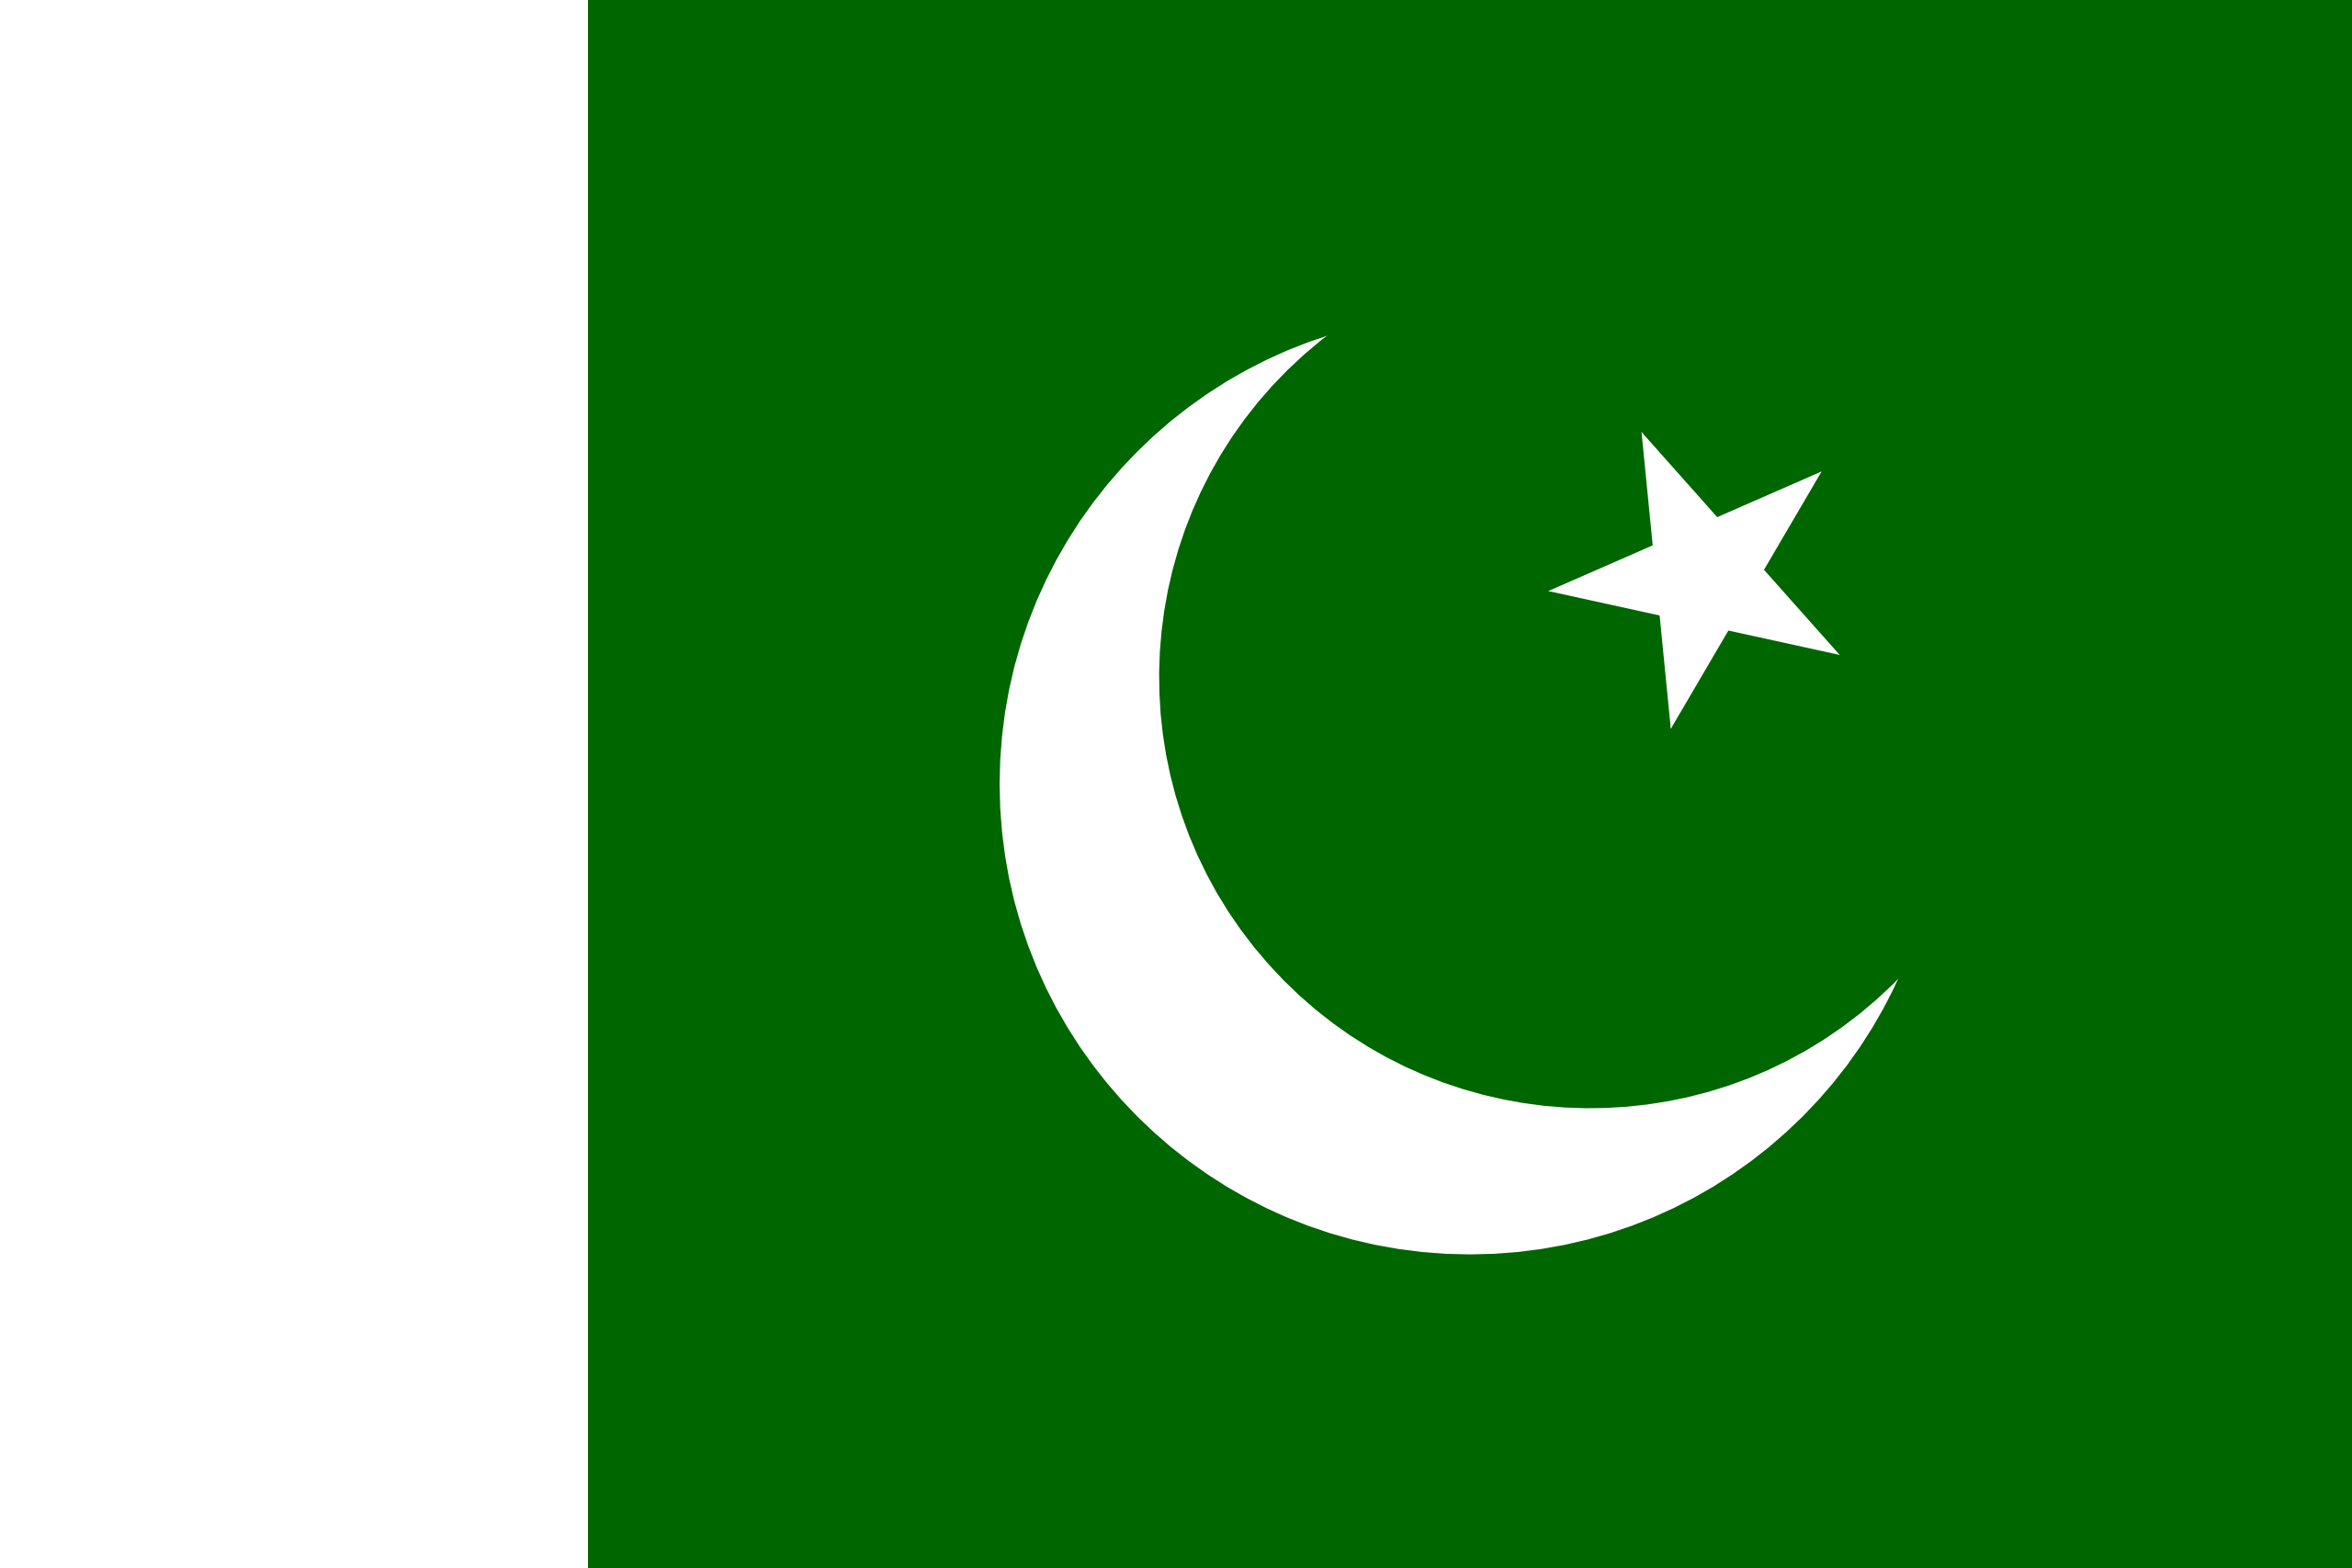 https://aerospaceexport.com/wp-content/uploads/2019/10/pakistan.png